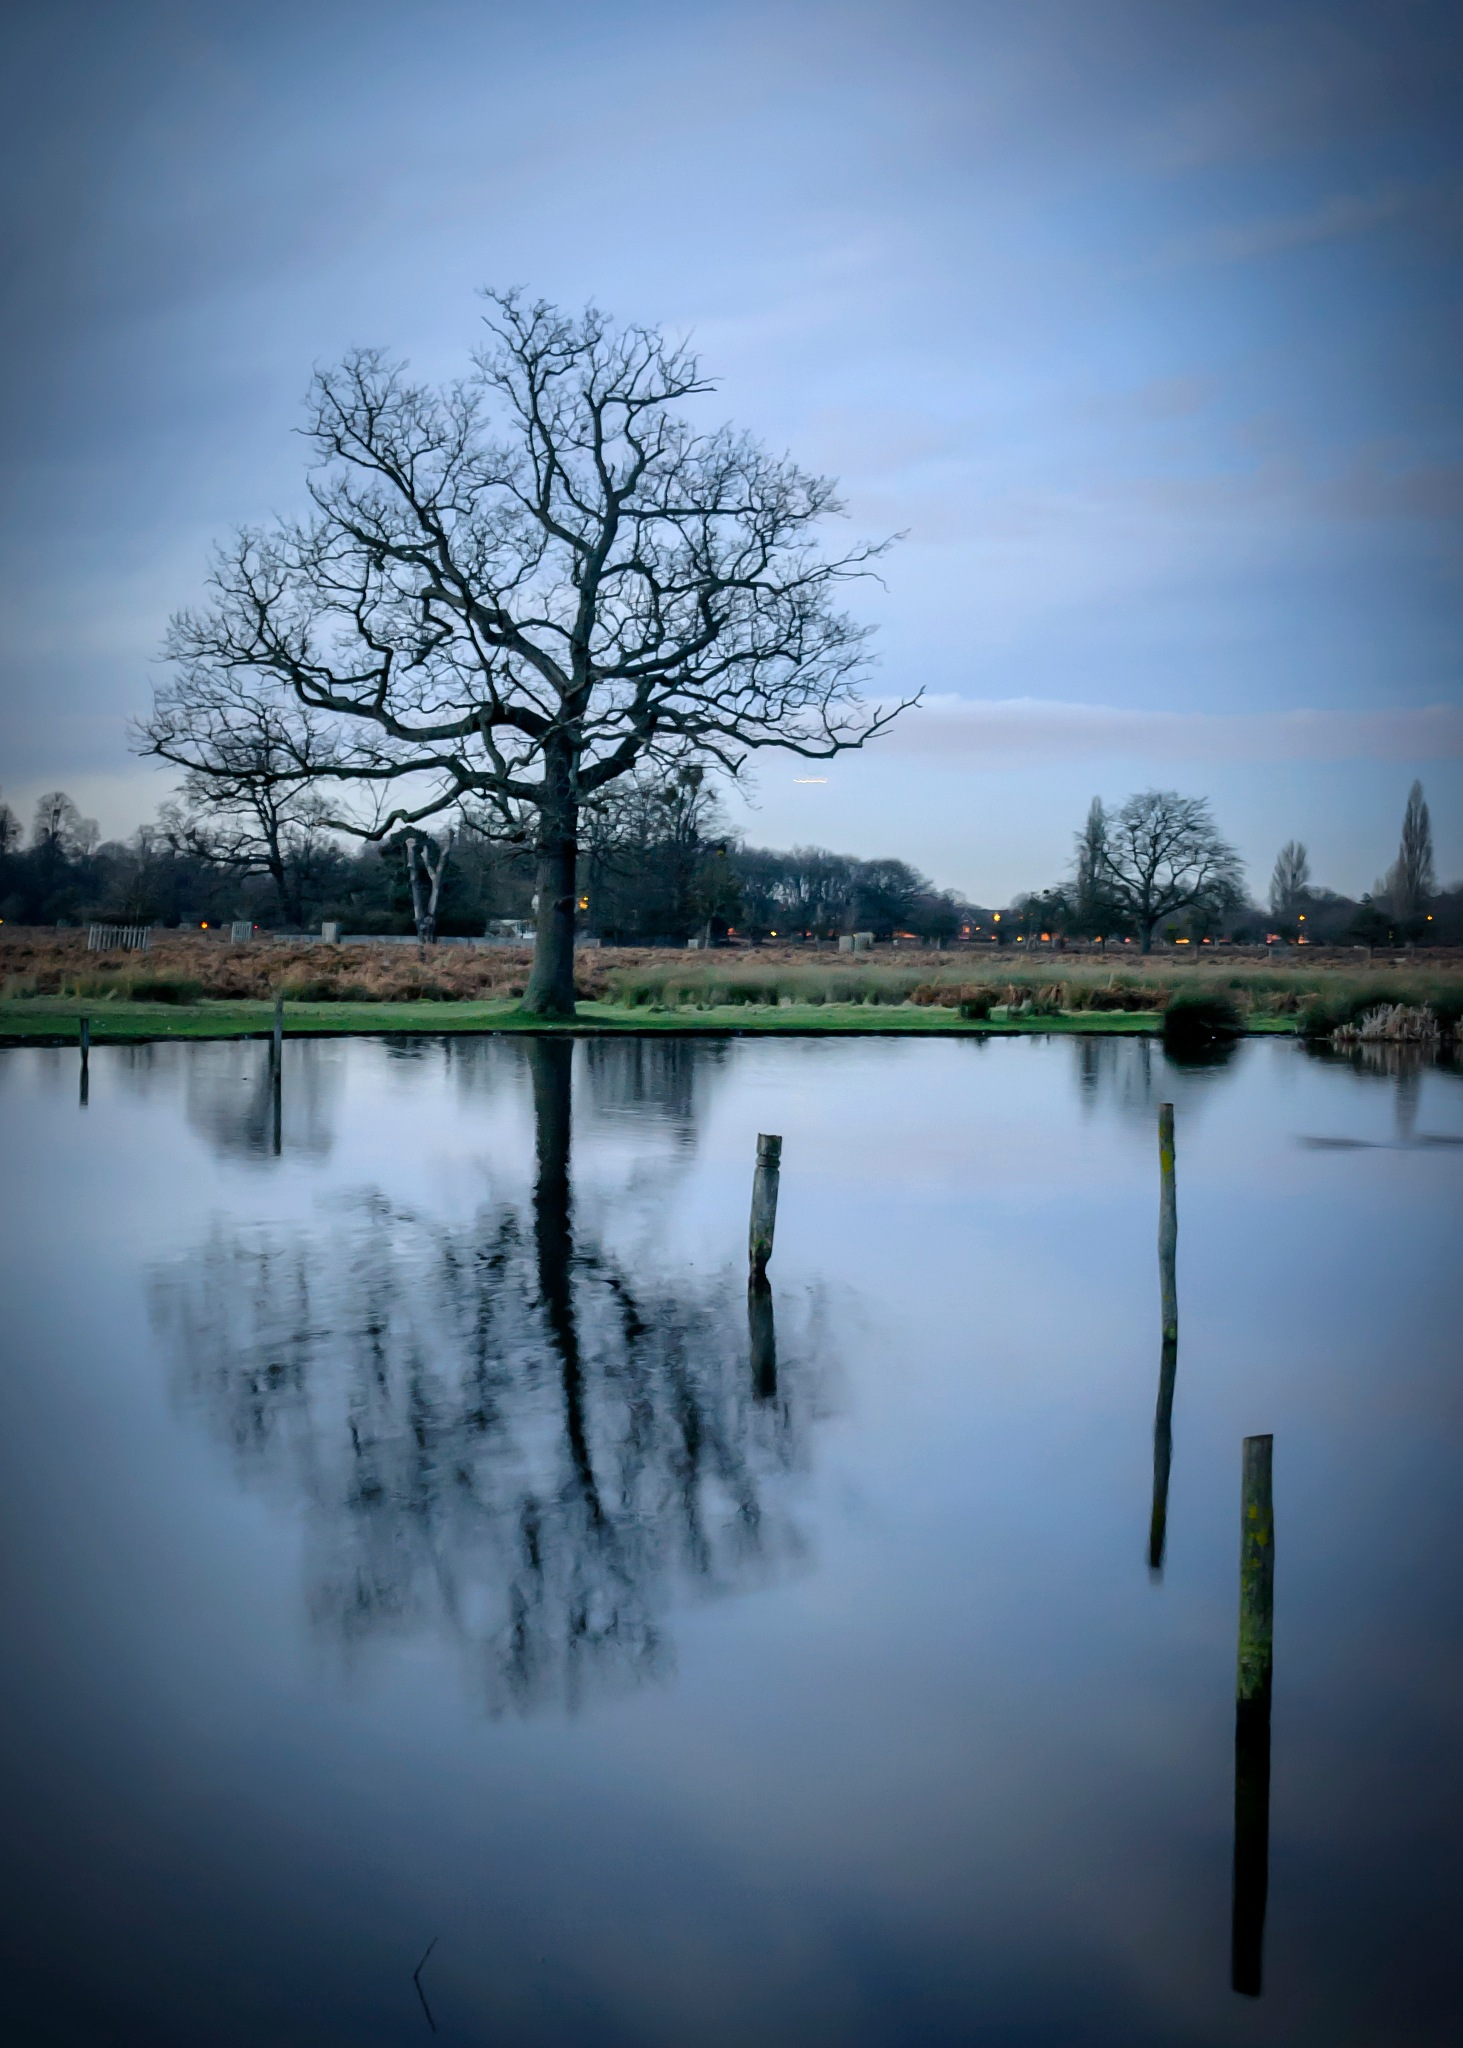 A Tree reflected on Pond by Massimo Crisafi